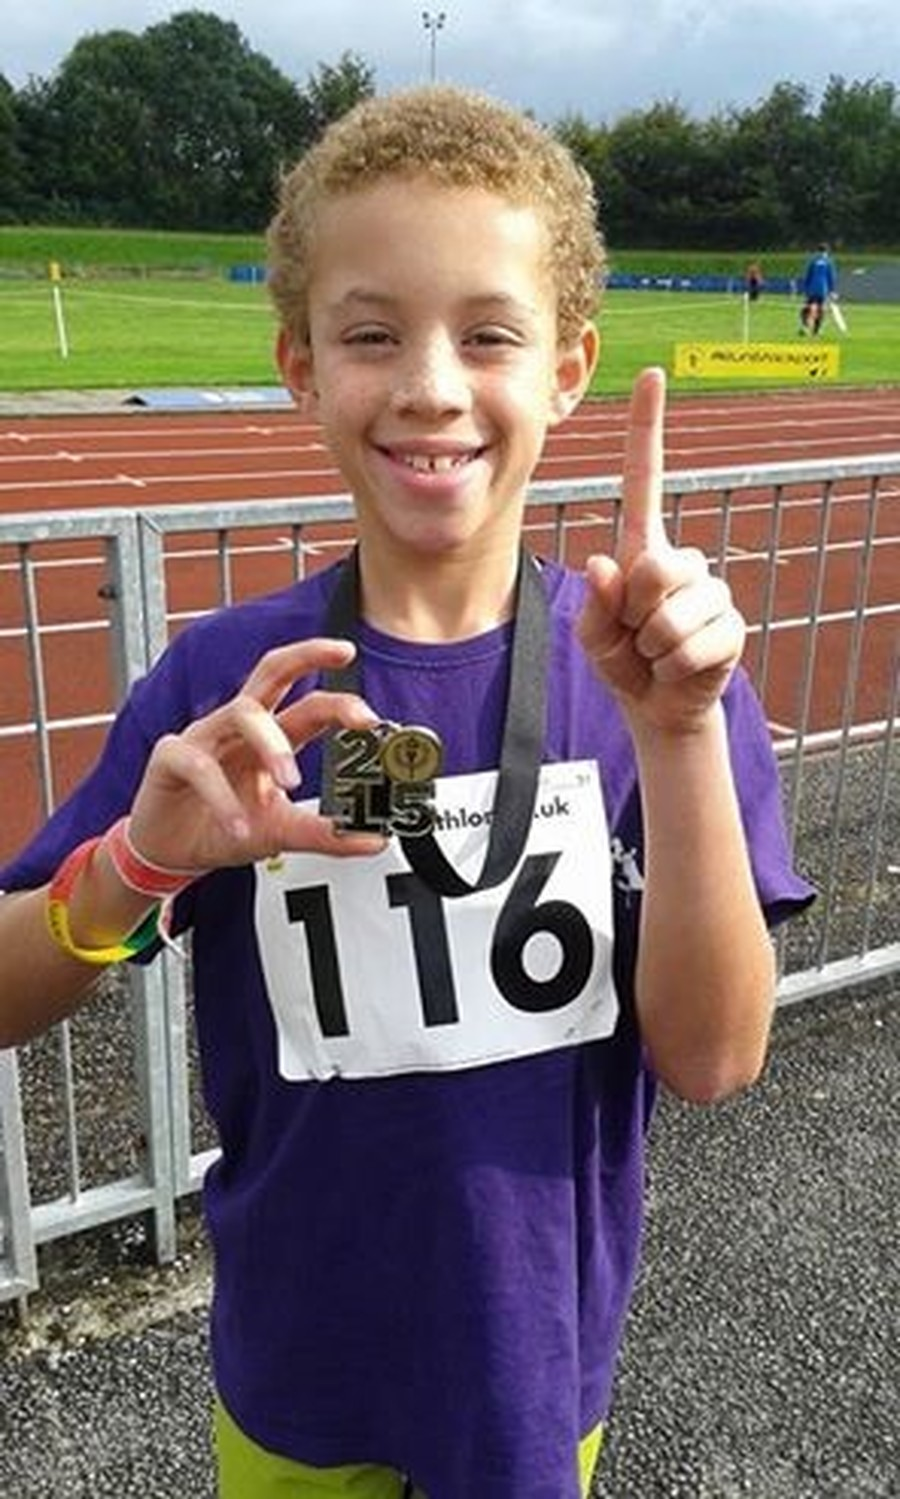 Congratulations to Lucas who won a gold medal at the outdoor under 9's Boys Quadrathlon event. He has also won special recognition trophy from Oldham Rockets Athletic Club. Lucas has also won Gold in each of the two outdoor events he has entered and a silver at the indoor. Well done Lucas keep up the hard work.